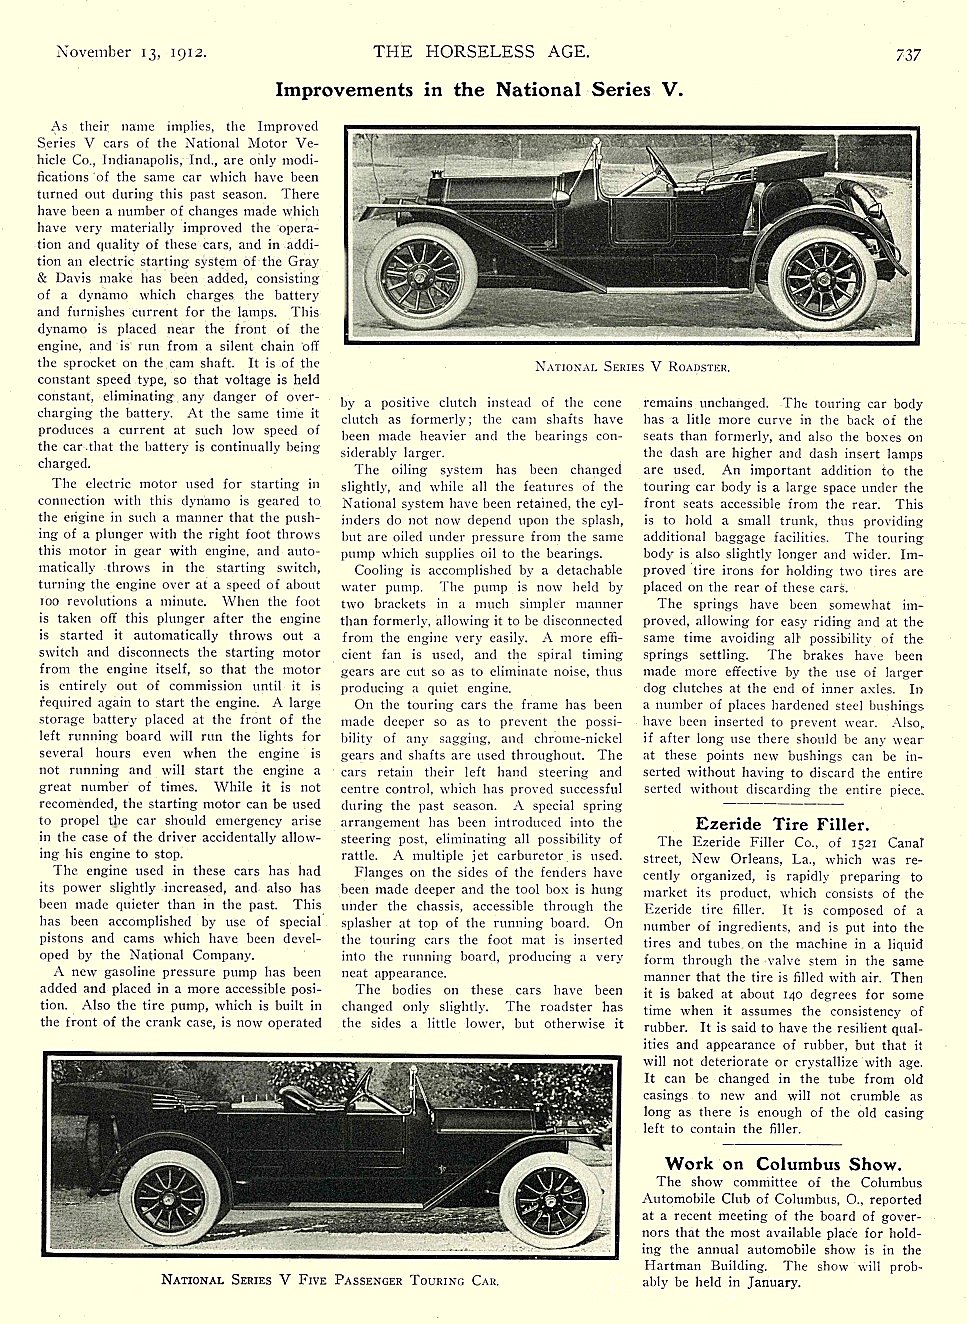 1912 11 13 NATIONAL Article Improvements in the National Series V THE HORSELESS AGE November 13, 1912 8.5″x11.5″ University of Minnesota Library page 737